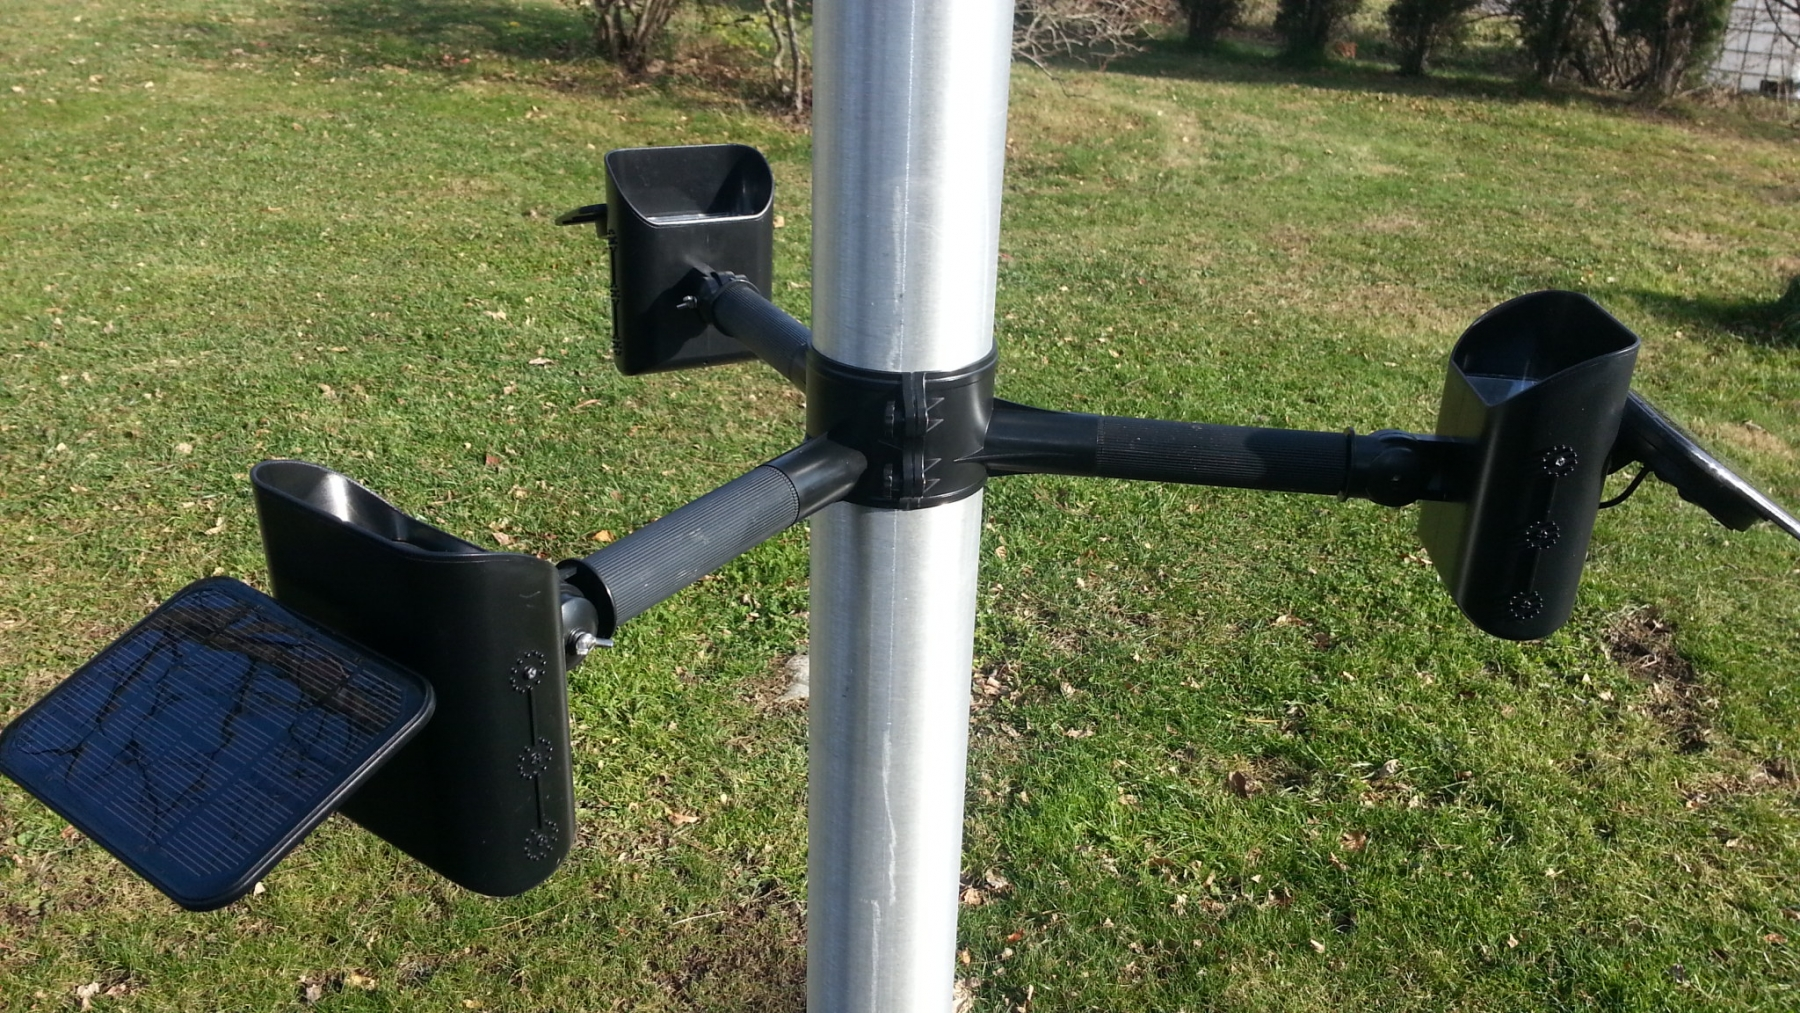 PolePal Solar Flagpole Lighting System Product Details